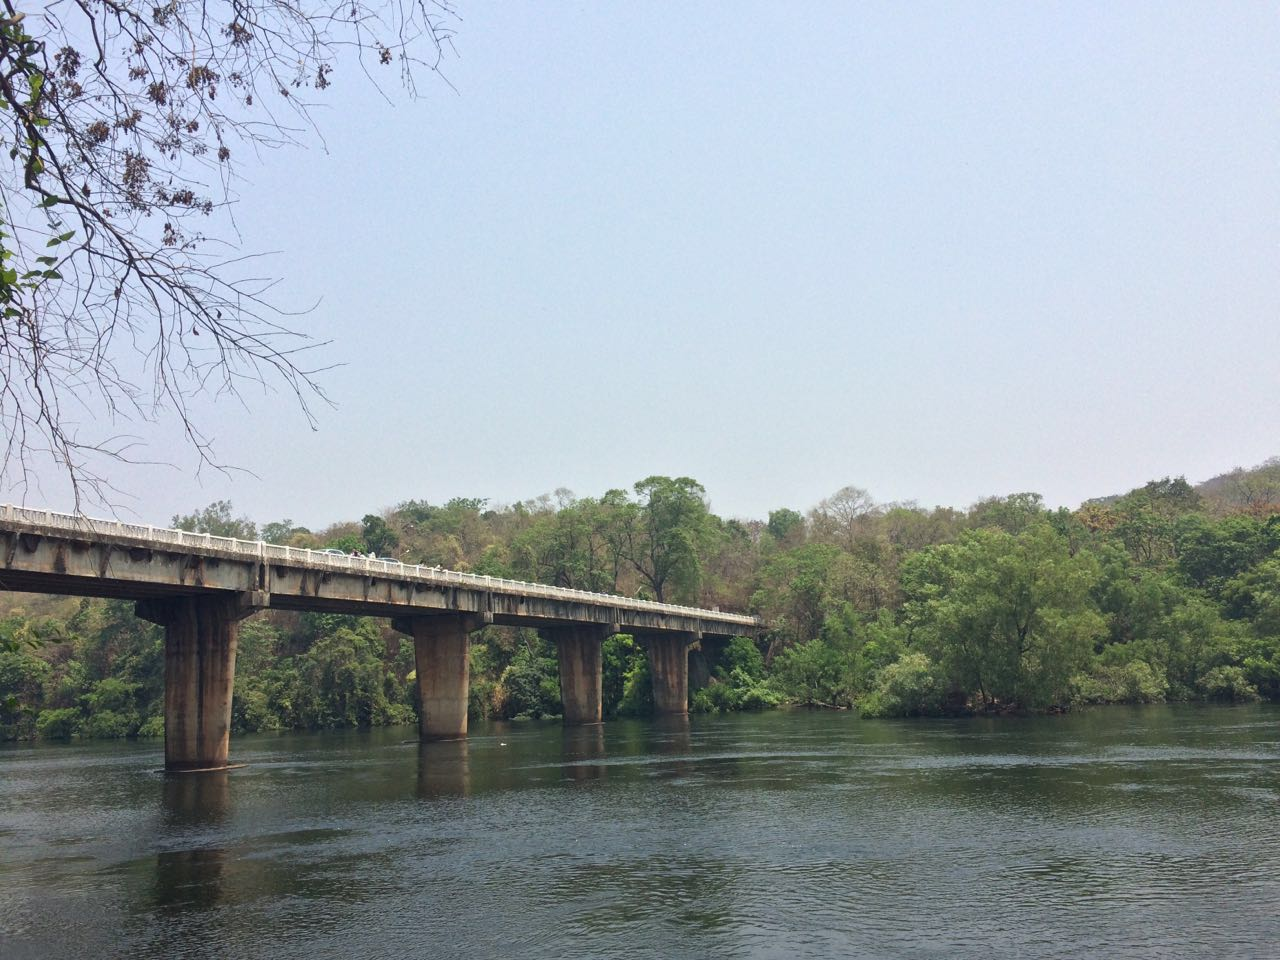 Kali River bridge in Ganeshgudi, Dandeli